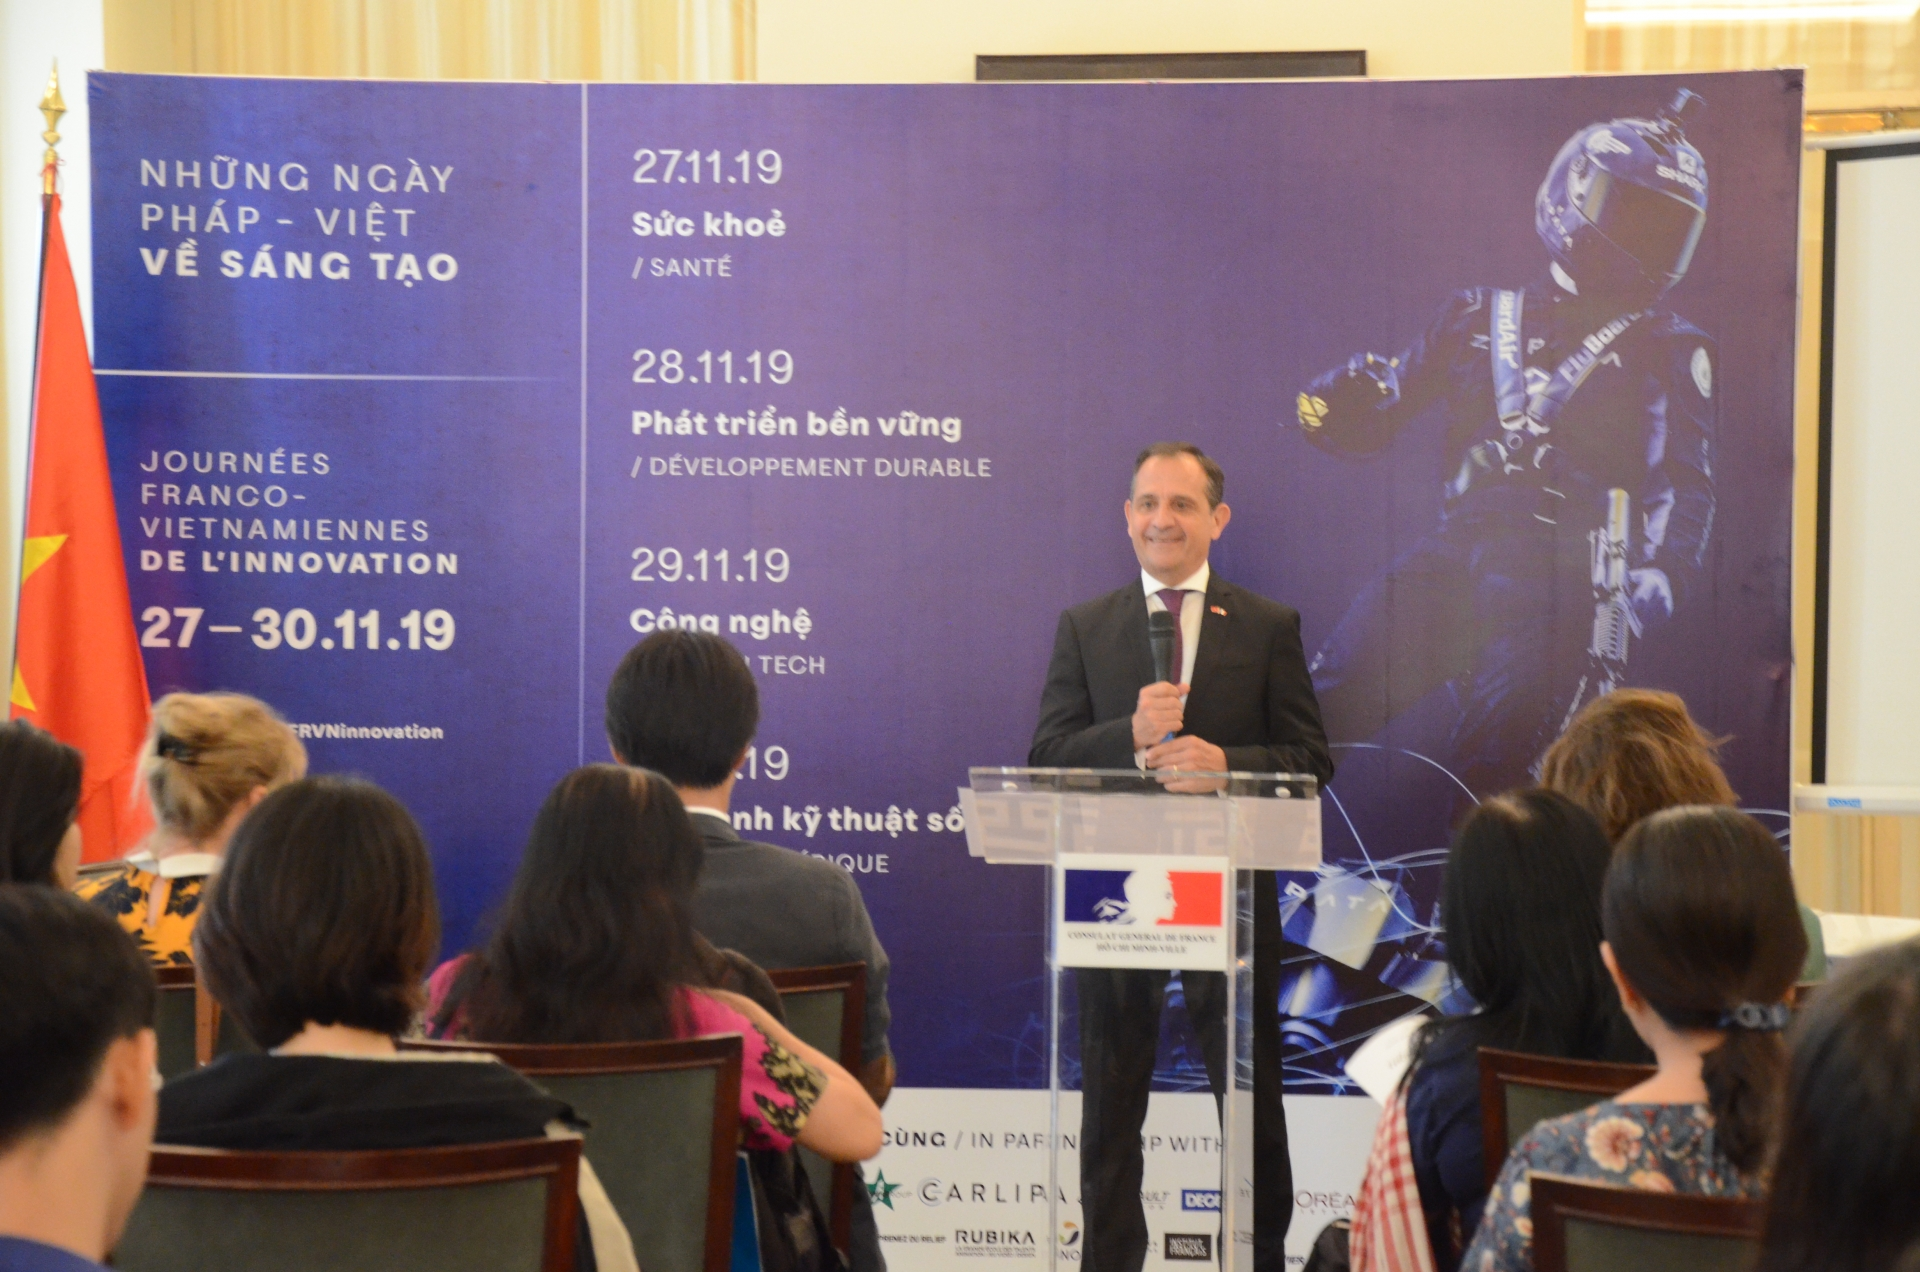 france vietnam days of innovation is underway